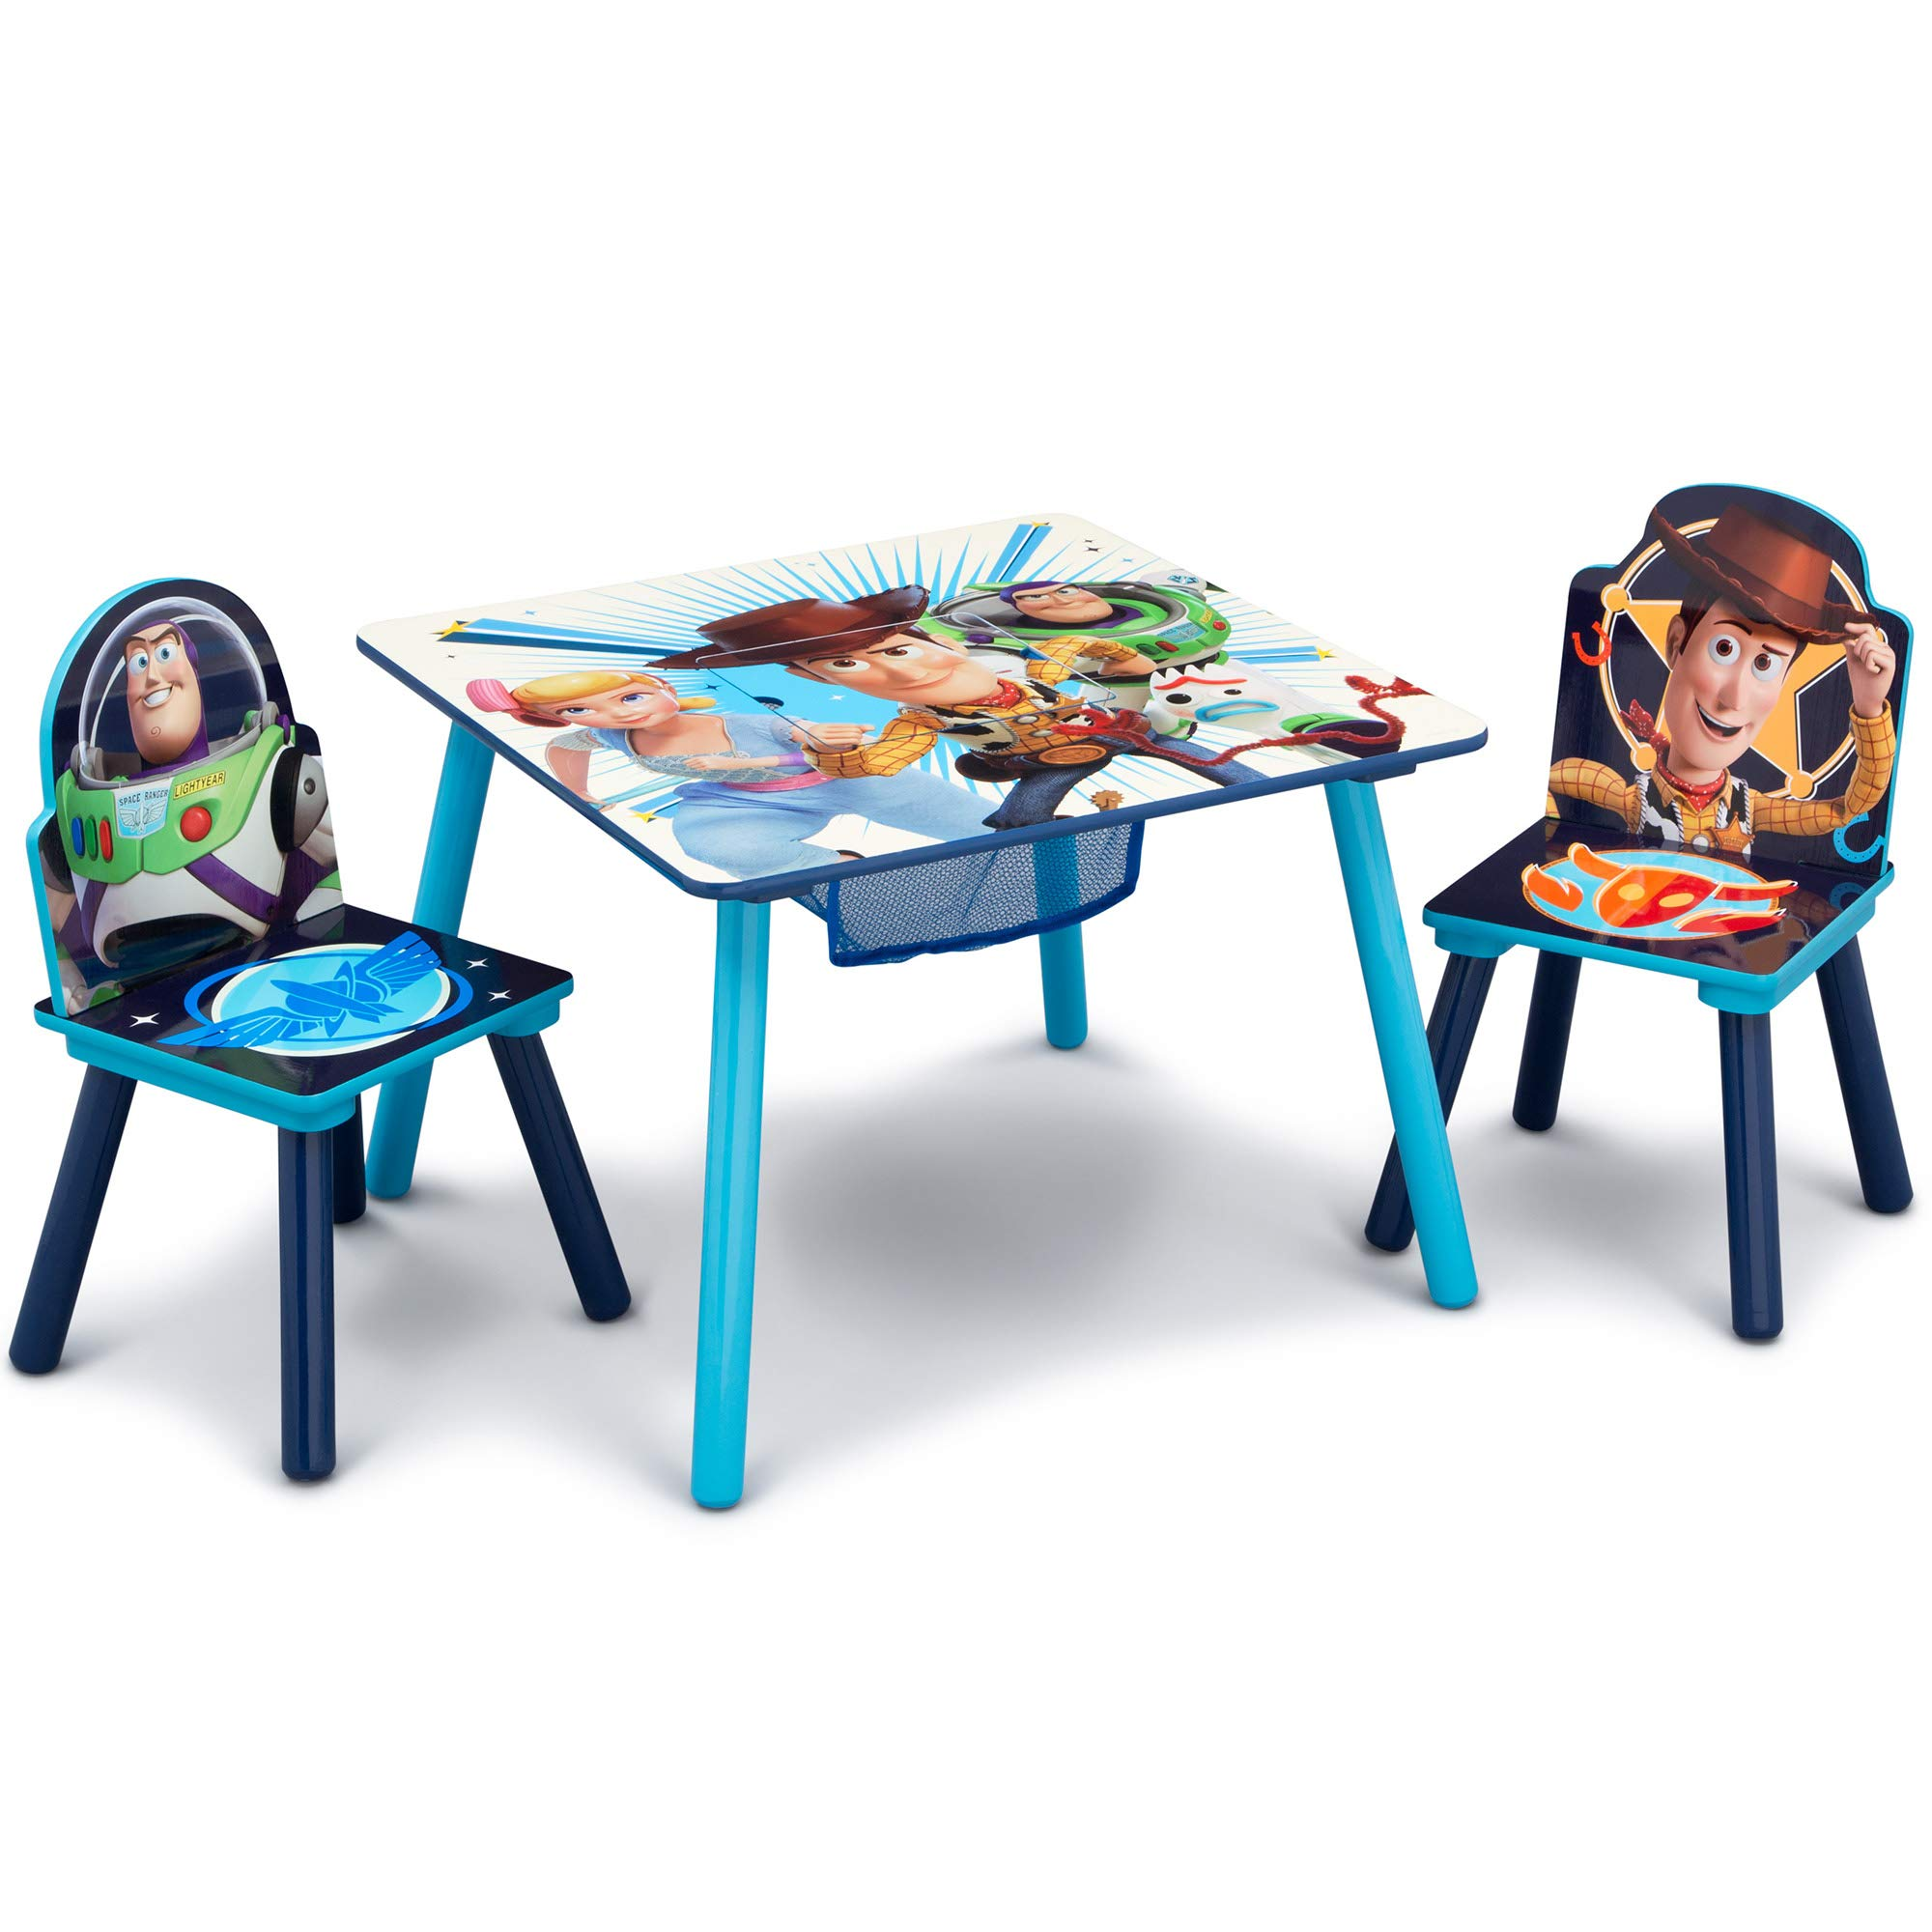 Delta Children Kids Chair Set and Table (2 Chairs Included), Disney/Pixar Toy Story 4 by Delta Children